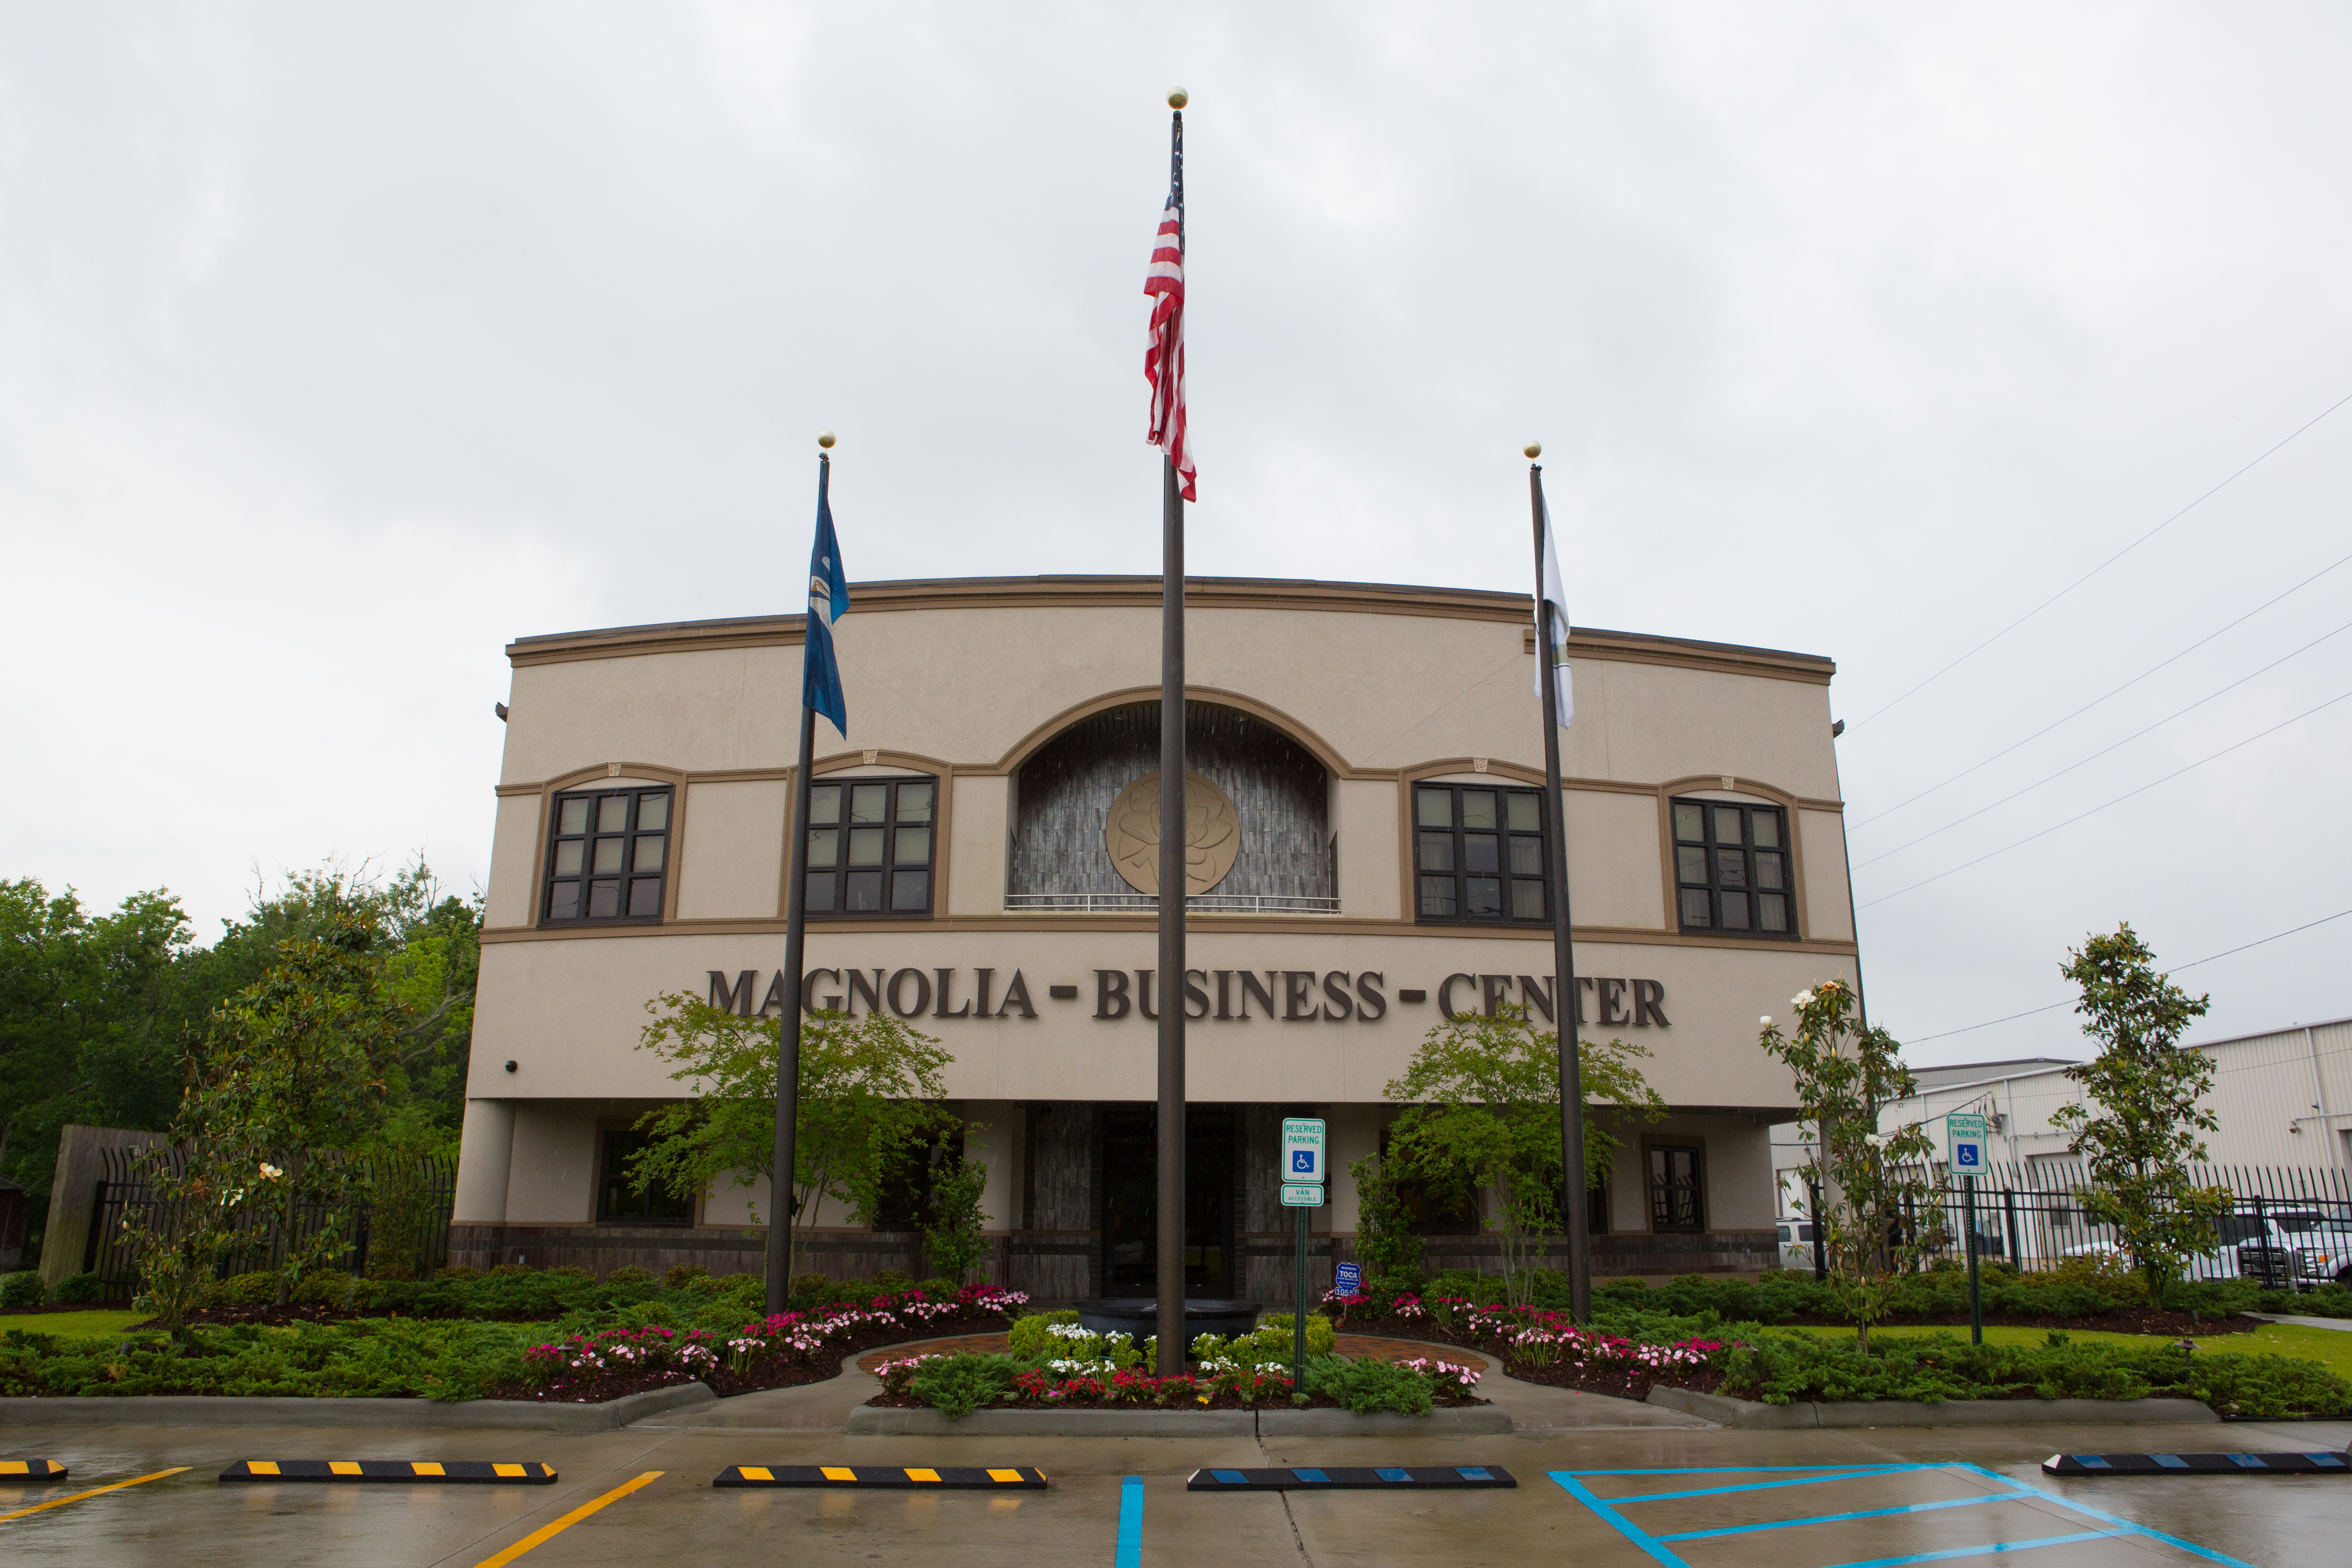 Magnolia Business Center Images By Robert T